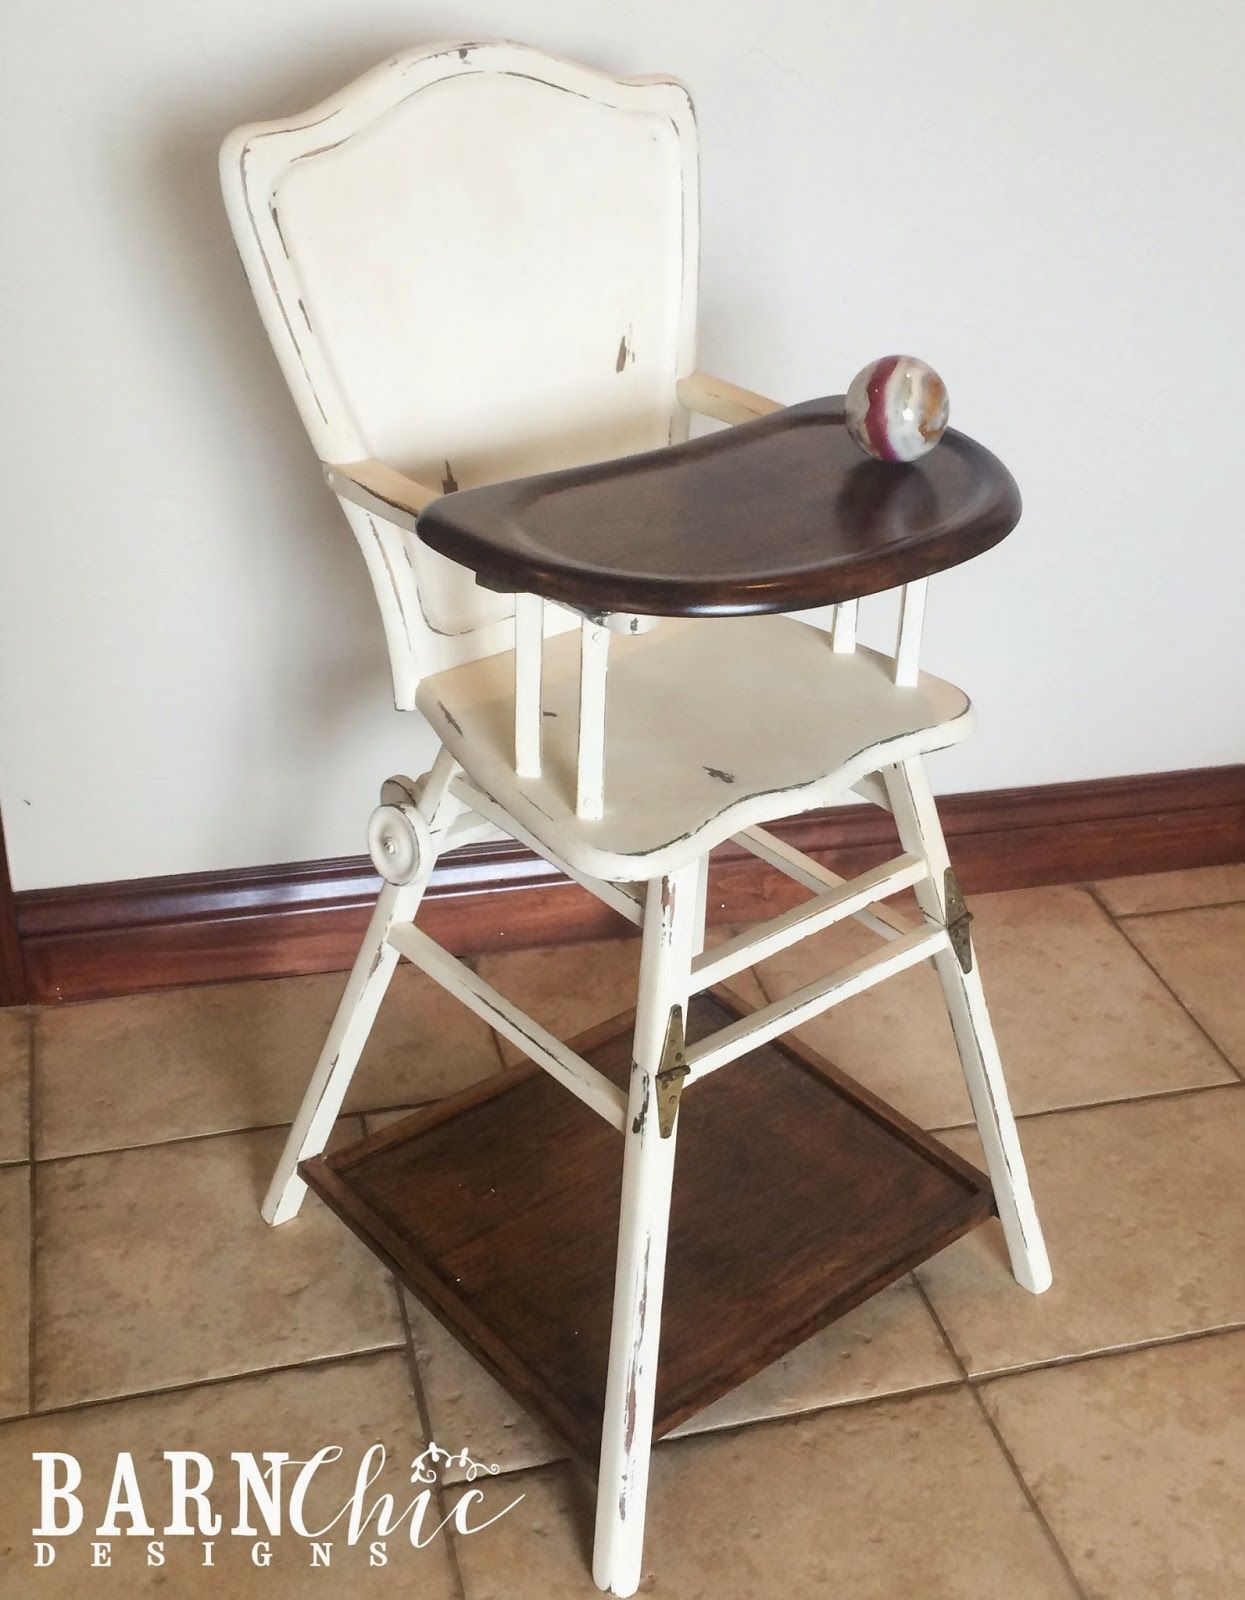 Refurbished Chairs Refinished Antique Old Wooden High Chair By Barn Chic